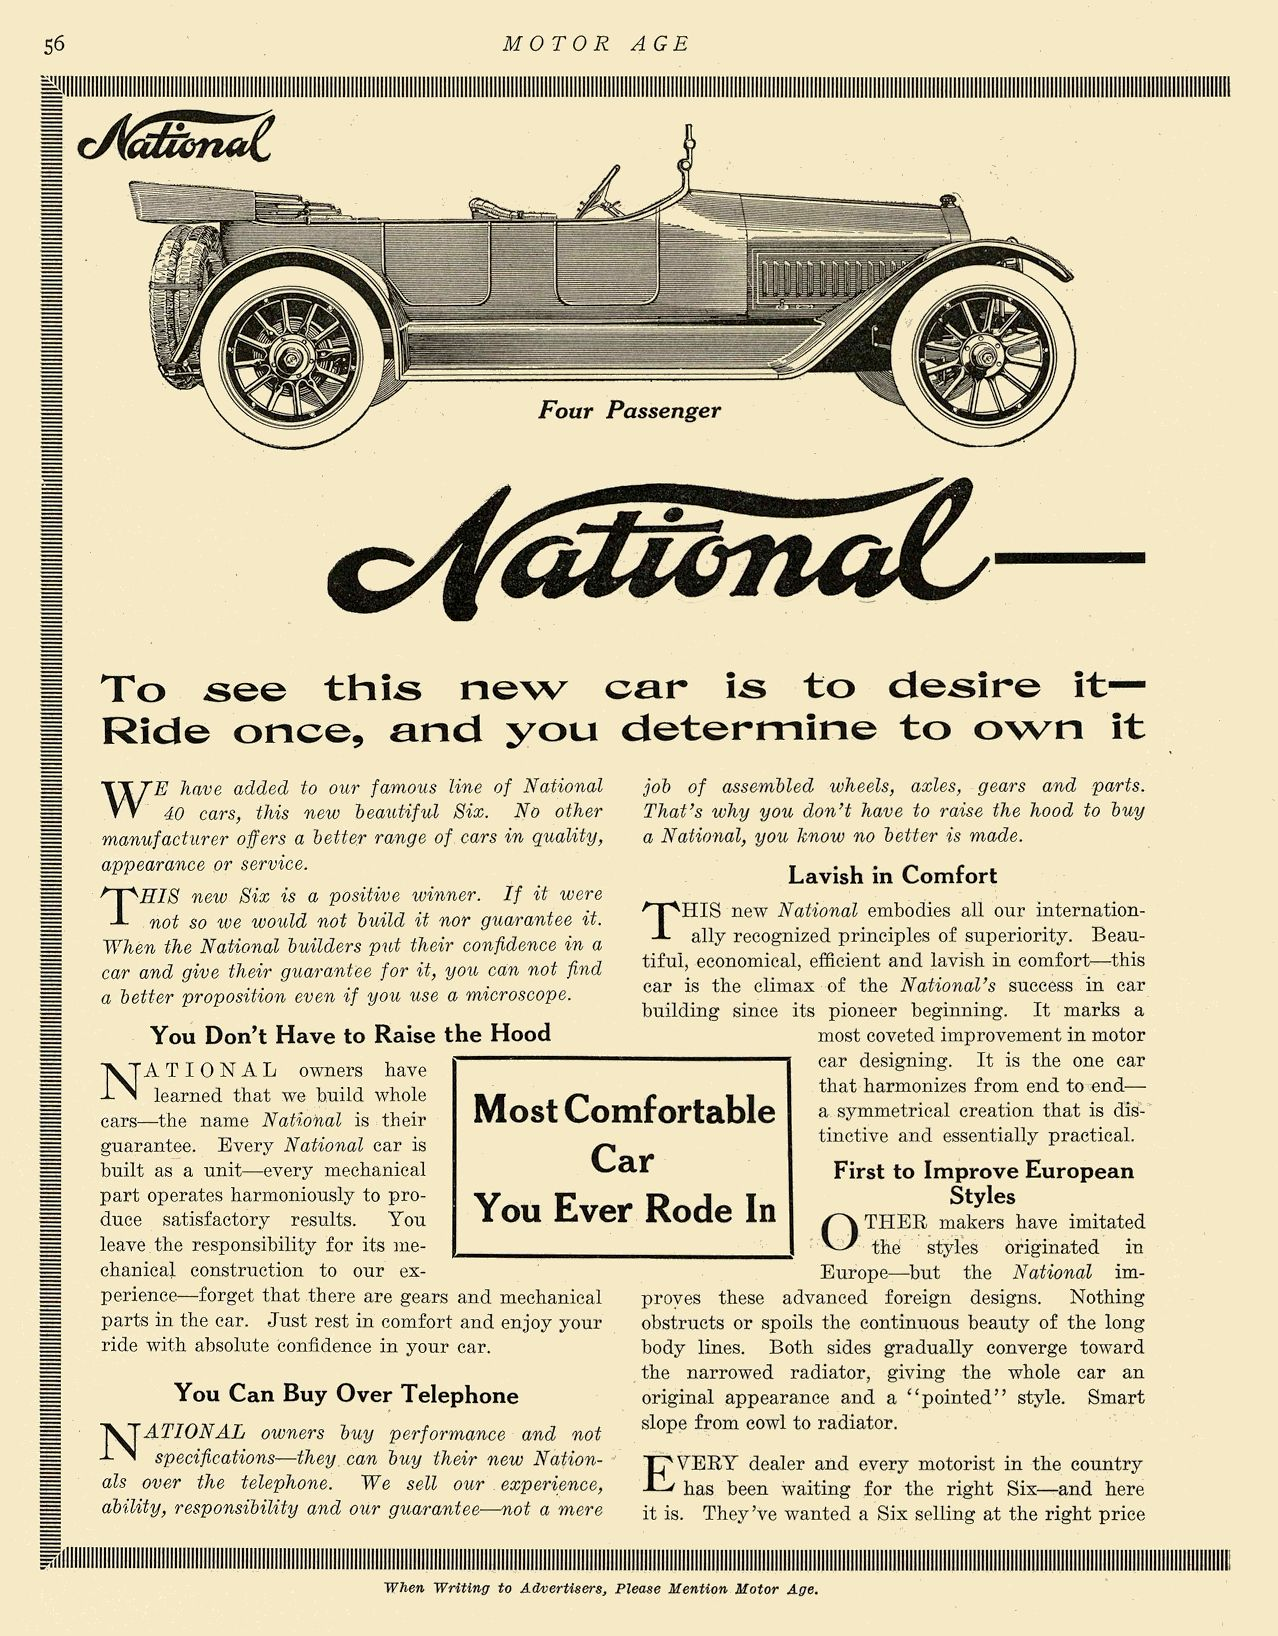 """1913 12 18 1914 NATIONAL National """"SIX"""" $2375 Most Comfortable Car You Ever Rode In National Motor Vehicle Co. Indianapolis, IND MOTOR AGE December 18, 1913 8.5″x12″ page 56"""